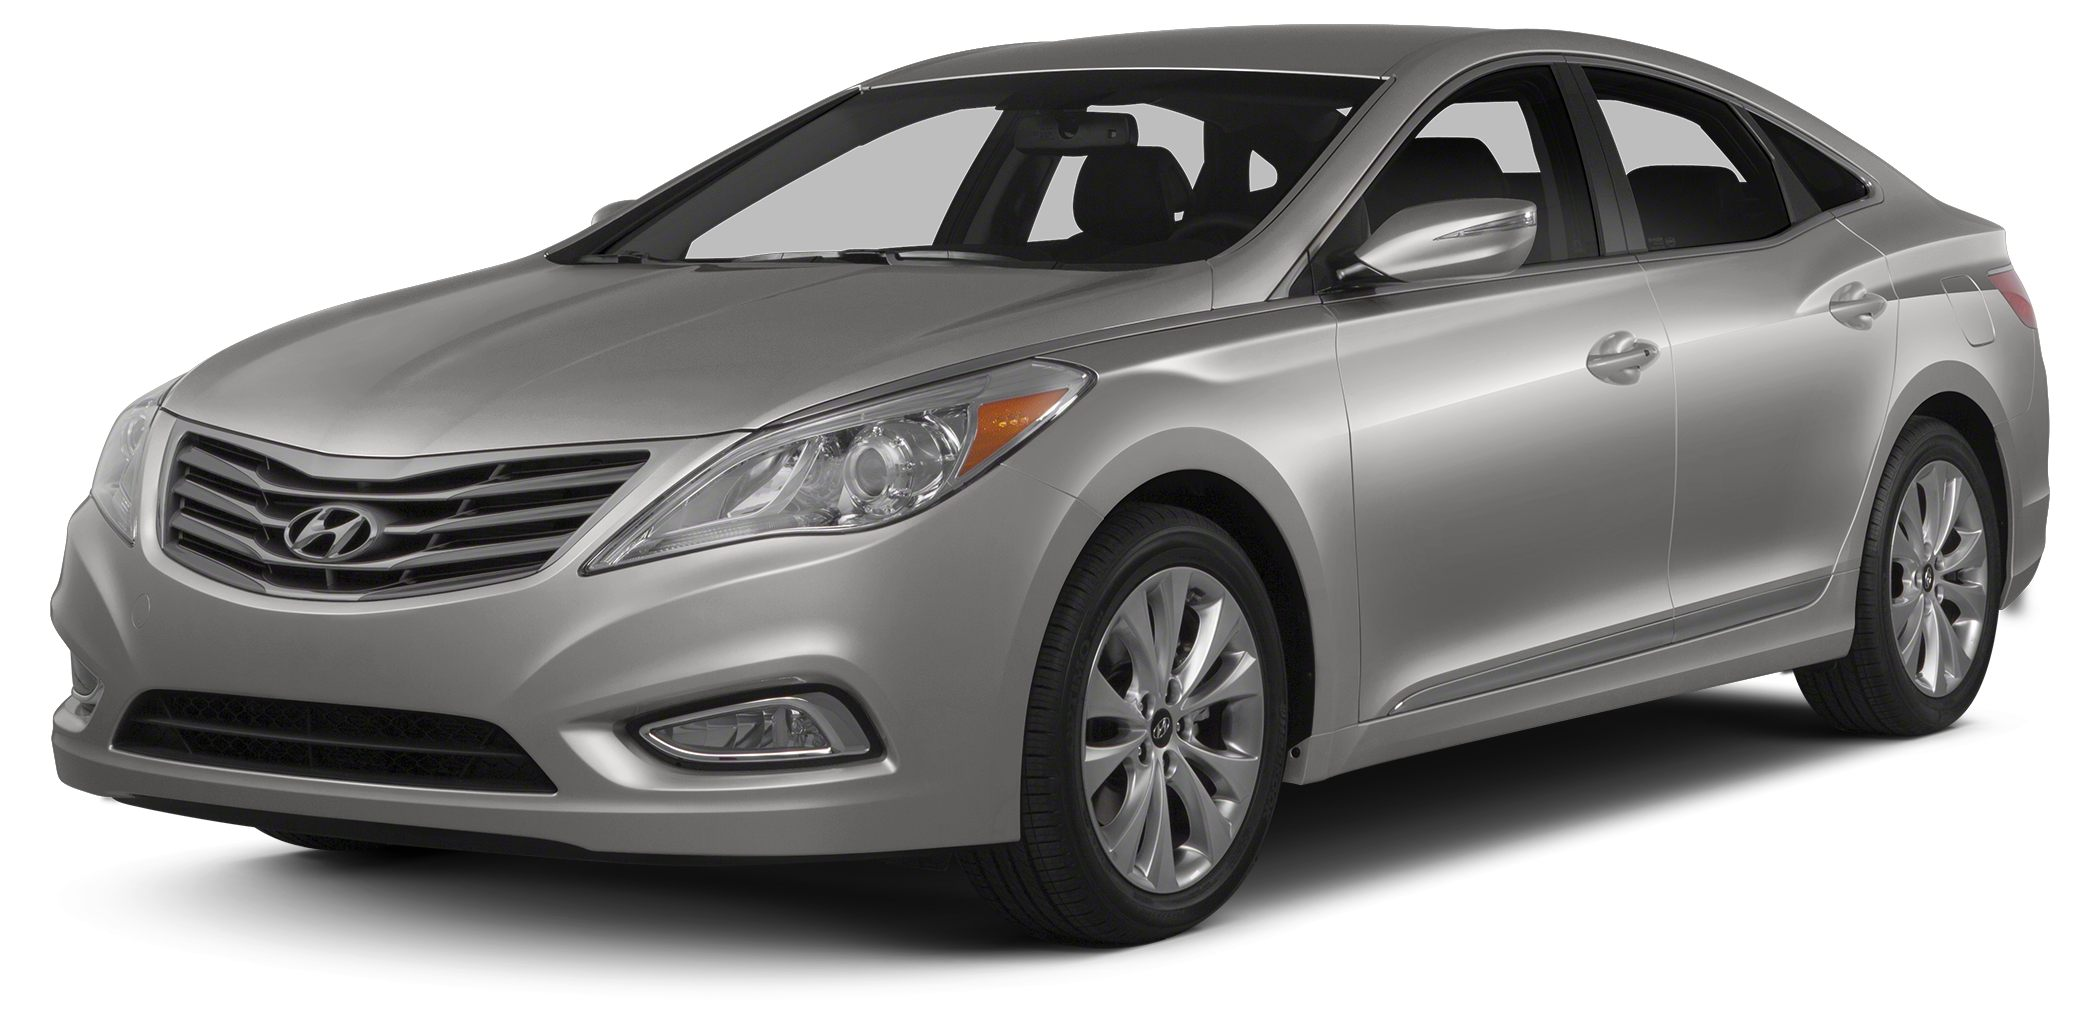 2013 Hyundai Azera Base Look forward to long road trips with anti-lock brakes and stability contro